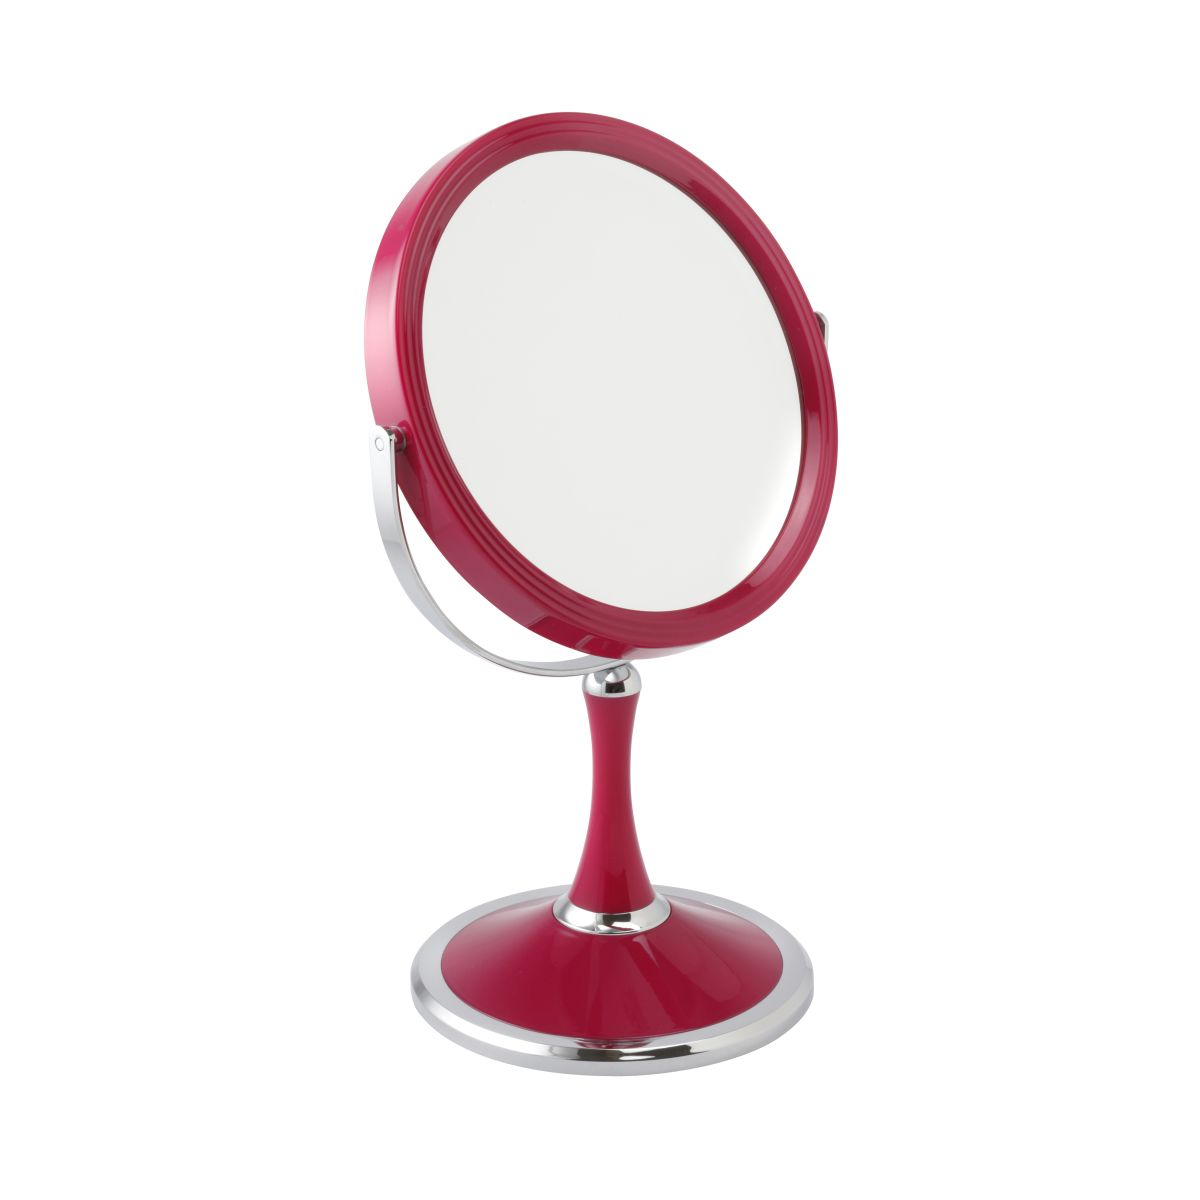 5801 18 pink 1 - Pink Pedestal 5x Magnification Cosmetic Mirror - 5801/18PINK